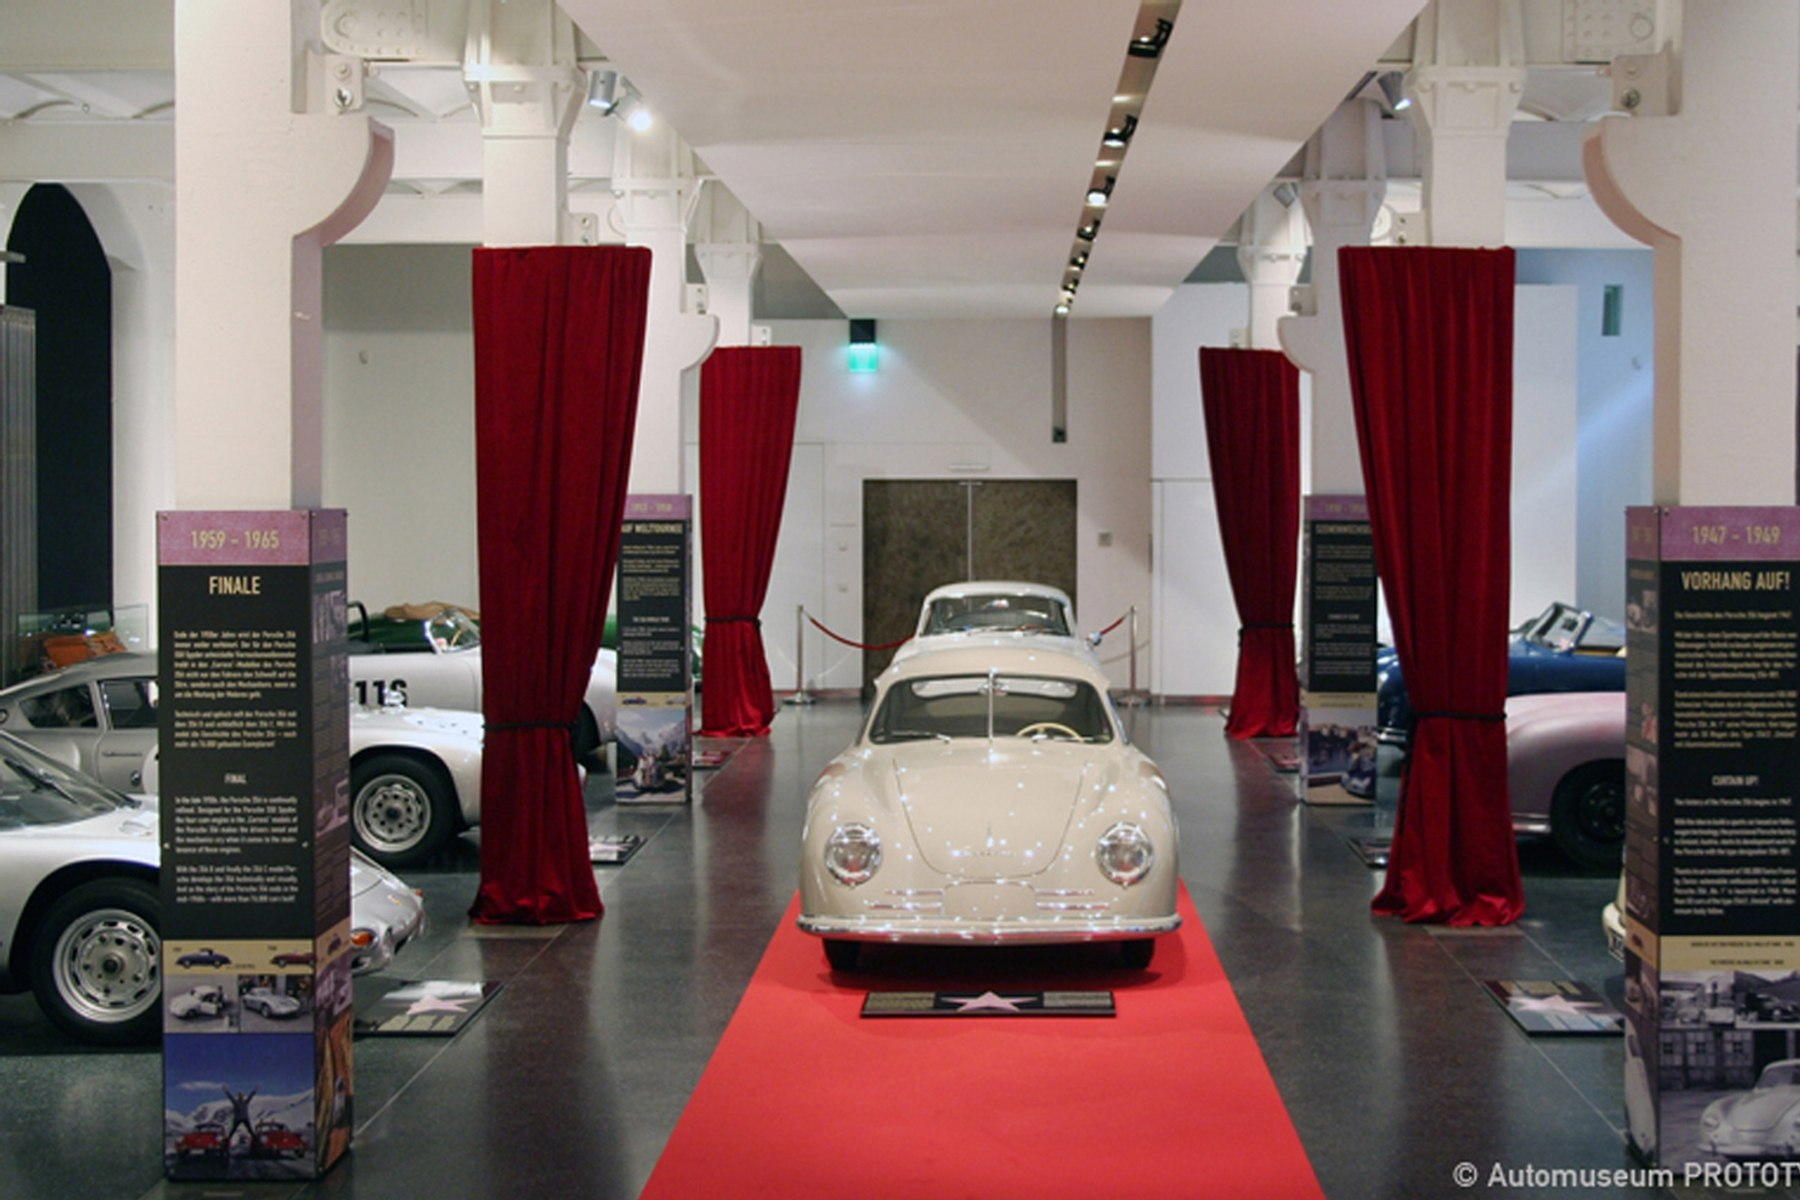 356 vip very important porsches ausstellung museen familie kind automuseum prototyp. Black Bedroom Furniture Sets. Home Design Ideas